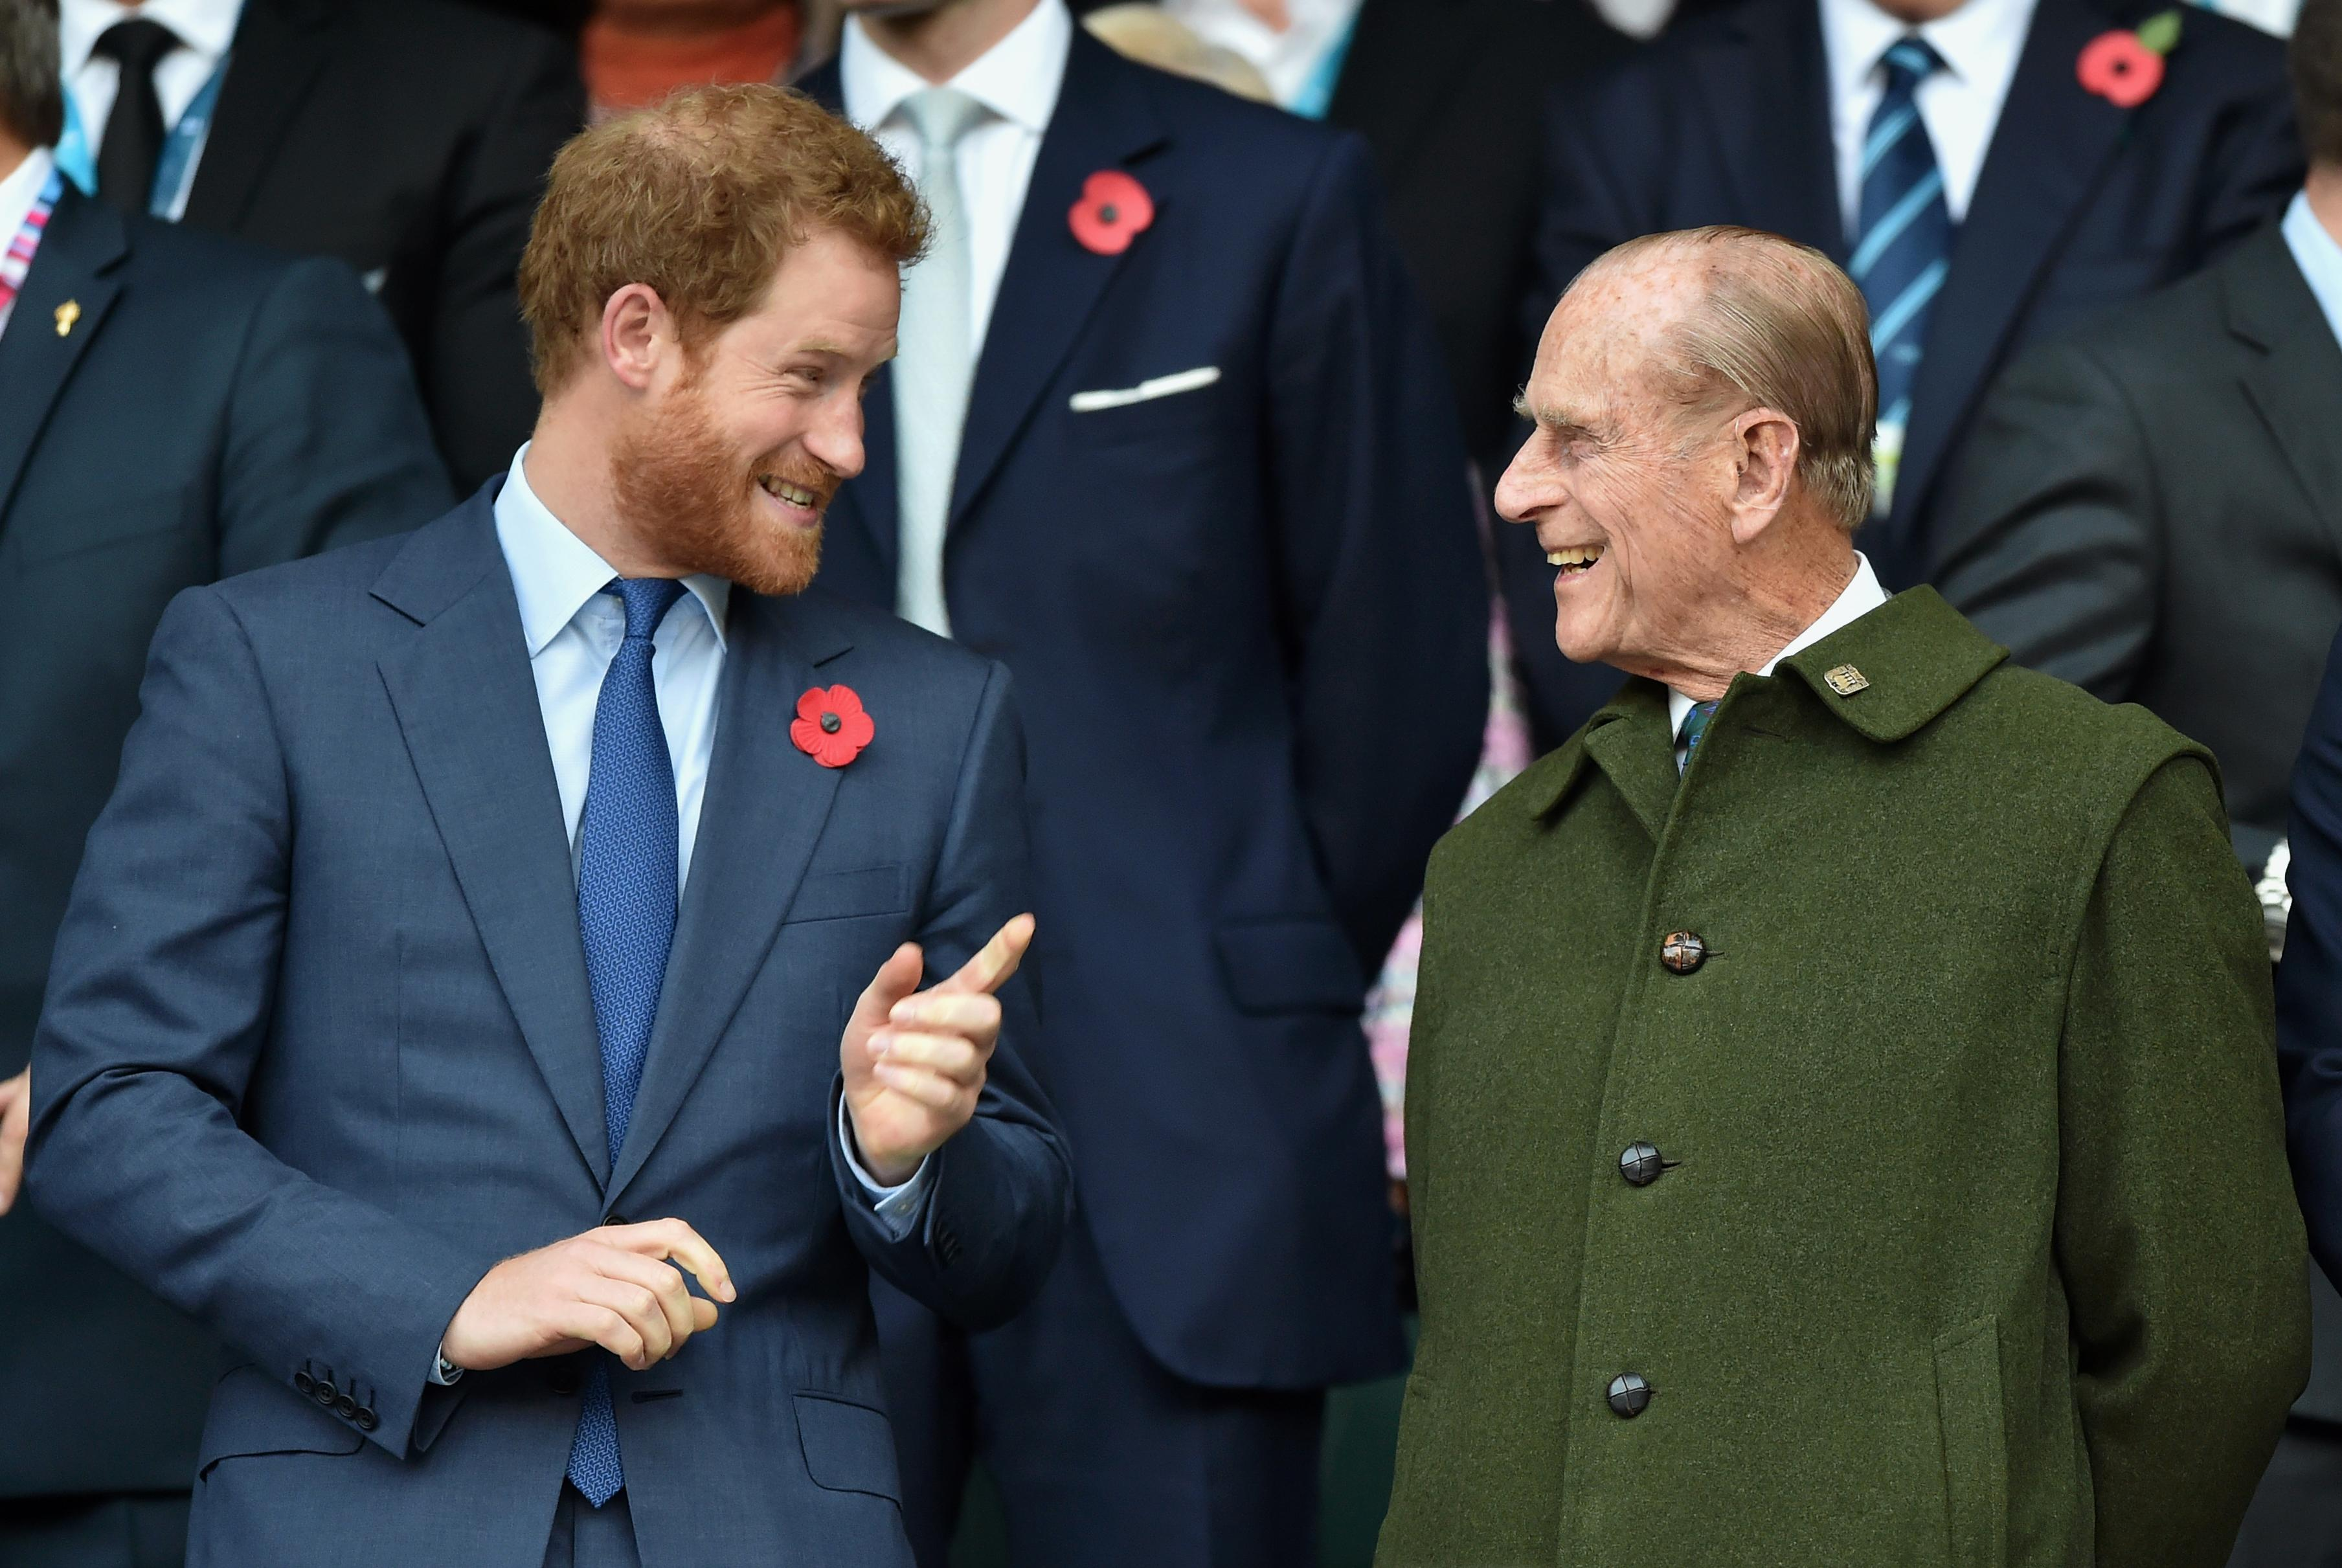 Prince Harry on Prince Philip: 'Legend of banter'